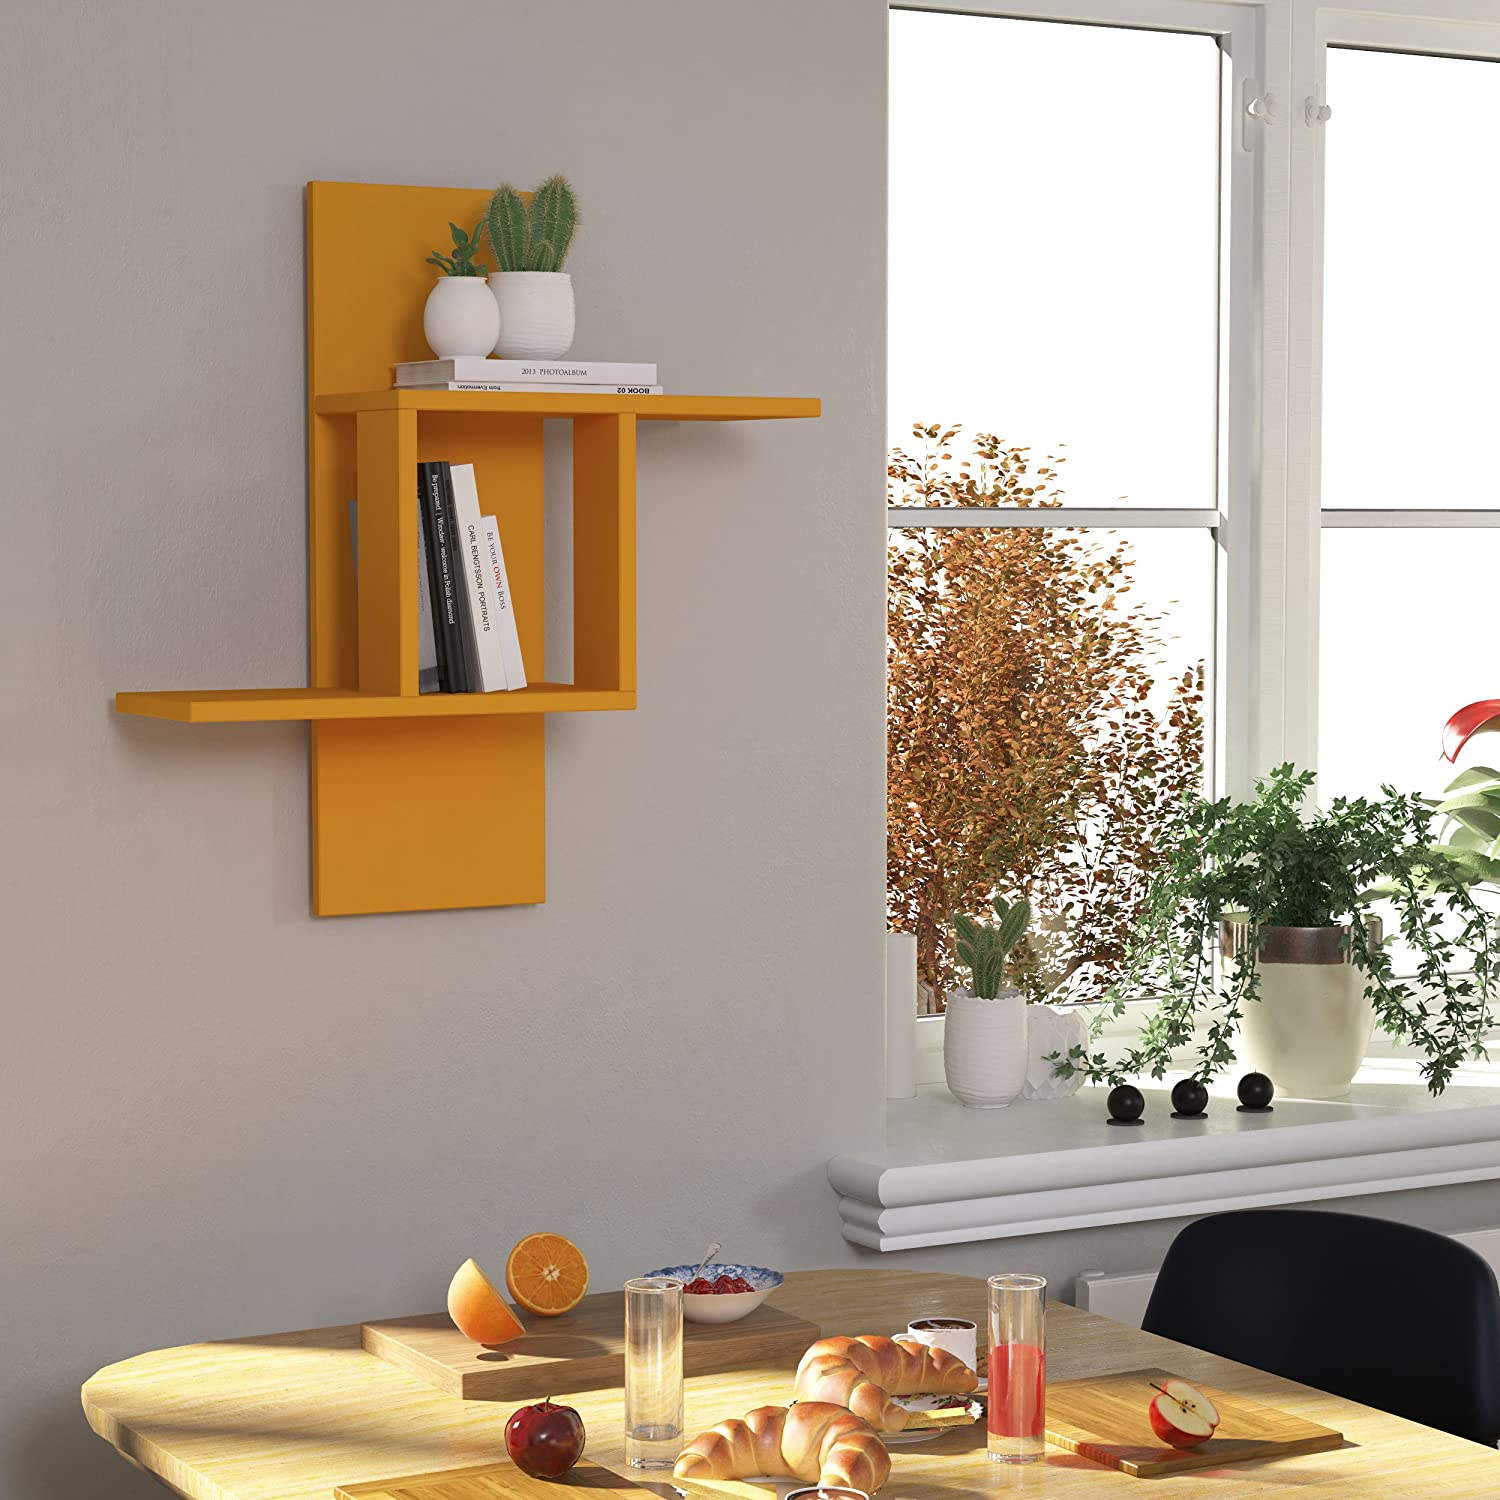 64x20x70cm Living Room Office Storage Hocuspicus 2 Tier Wall Shelf Many Colour Options- Easy to Assemble Mustard